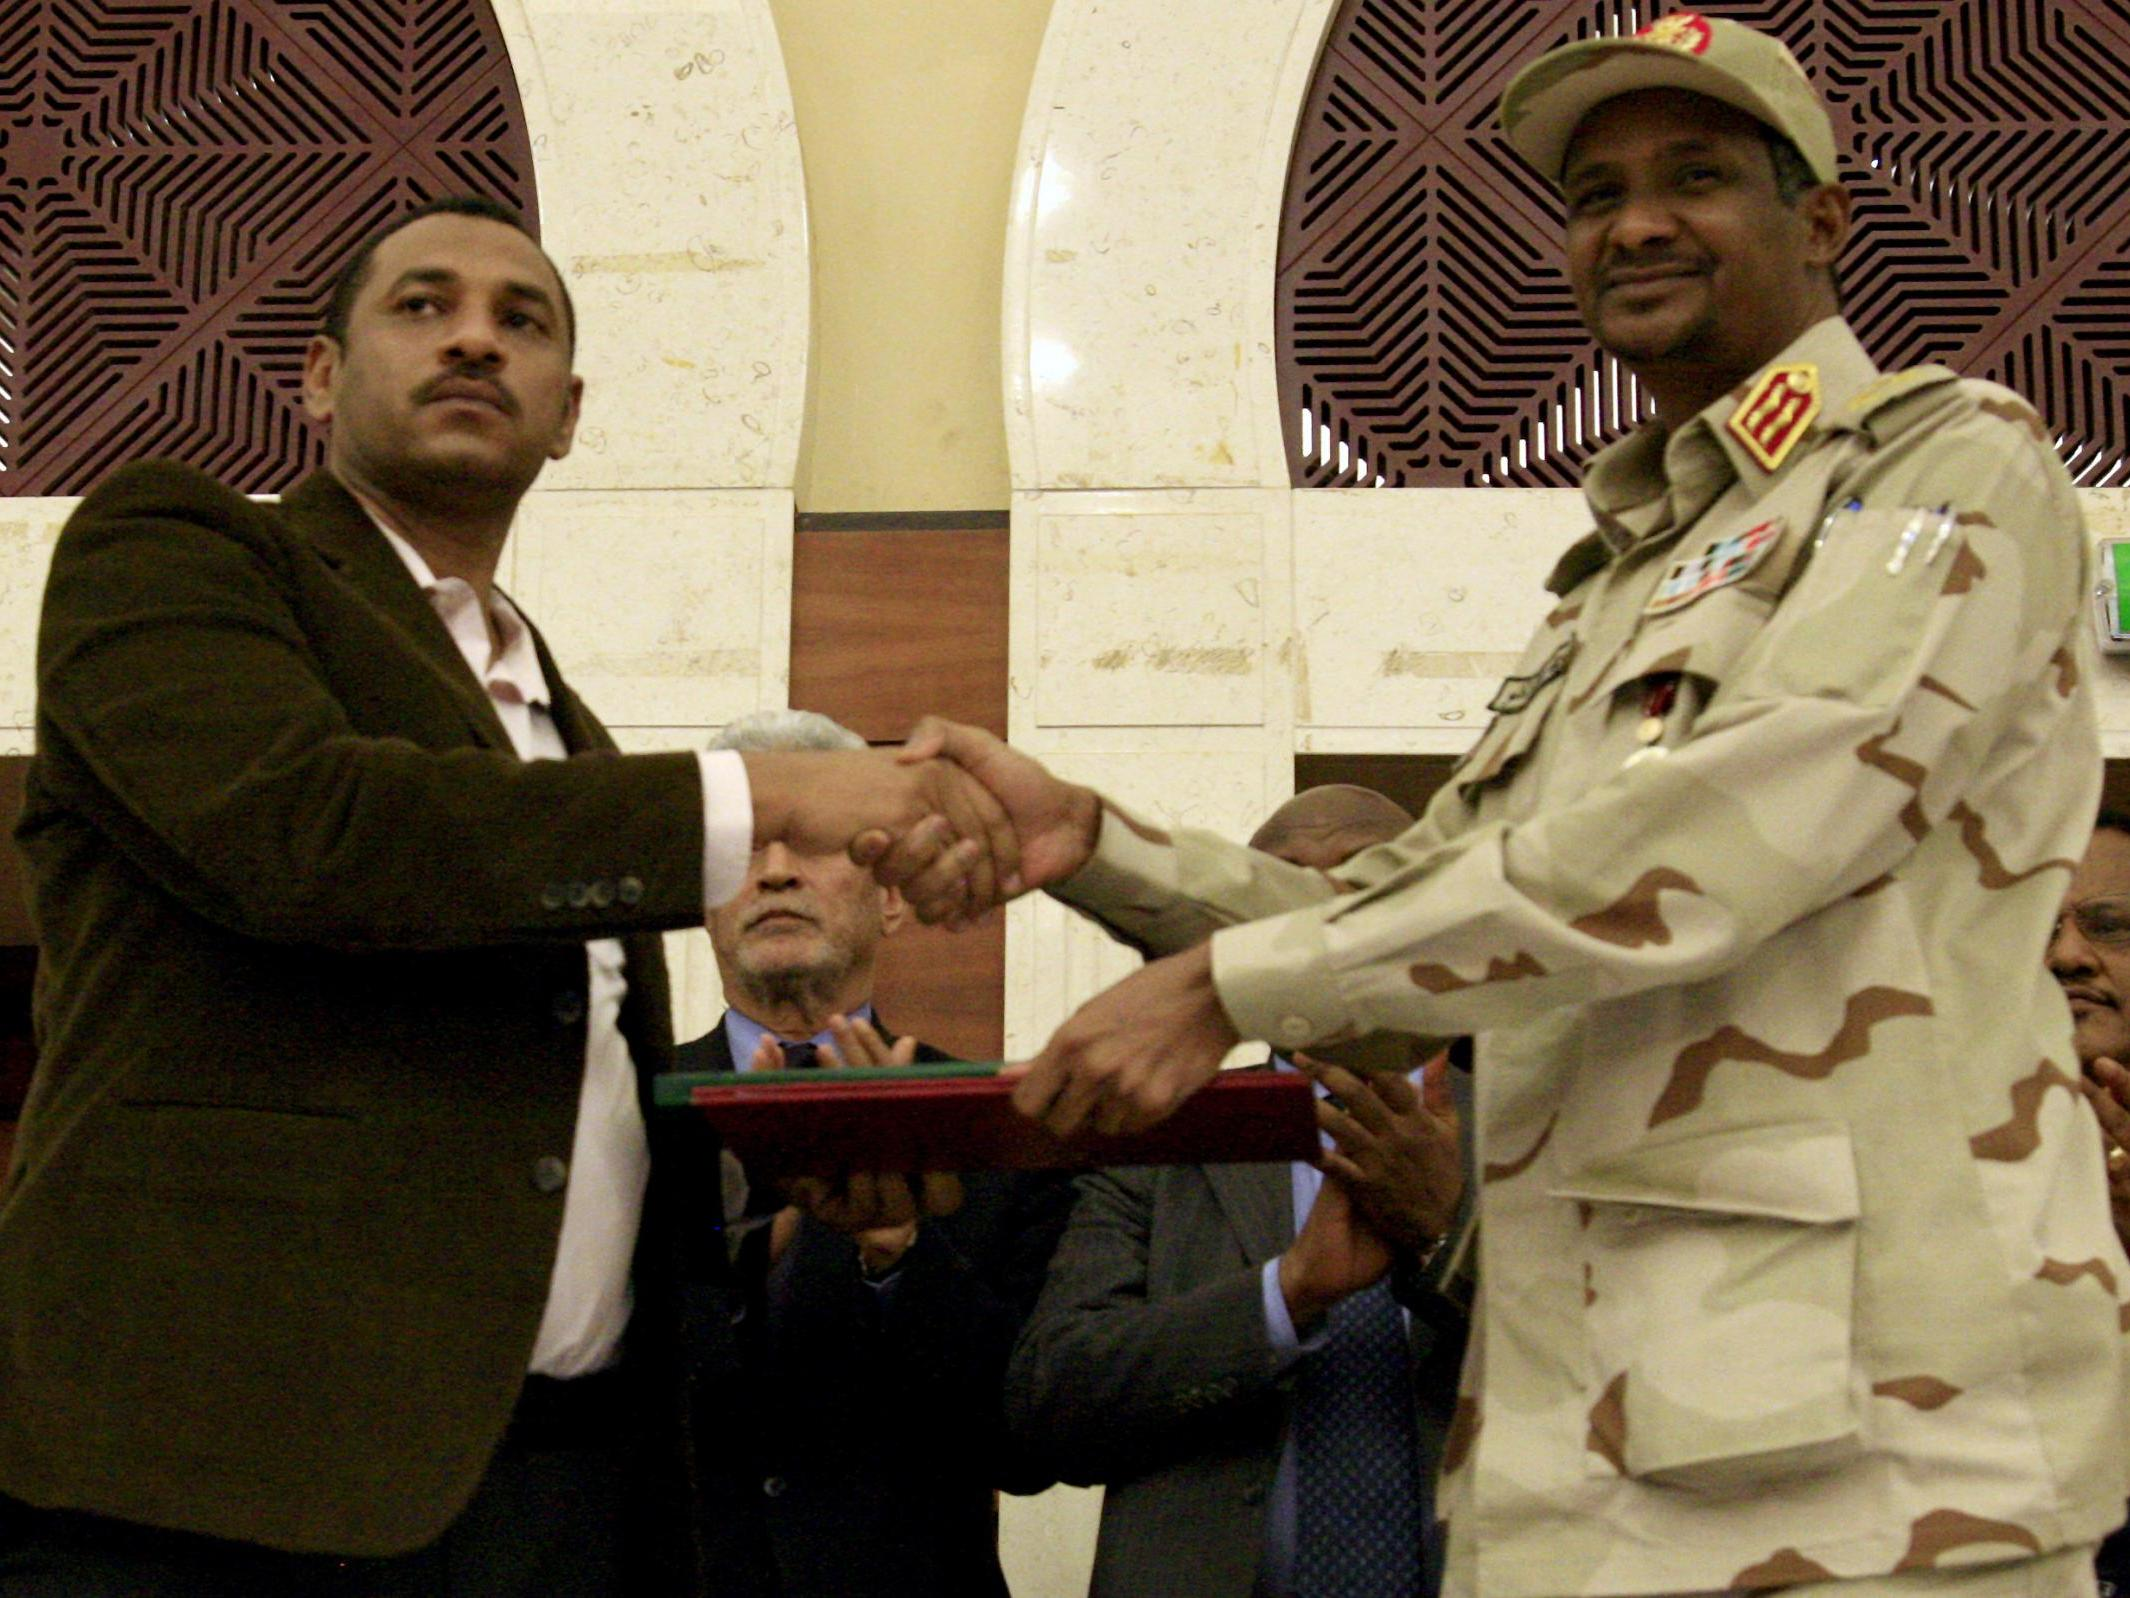 Sudan - latest news, breaking stories and comment - The